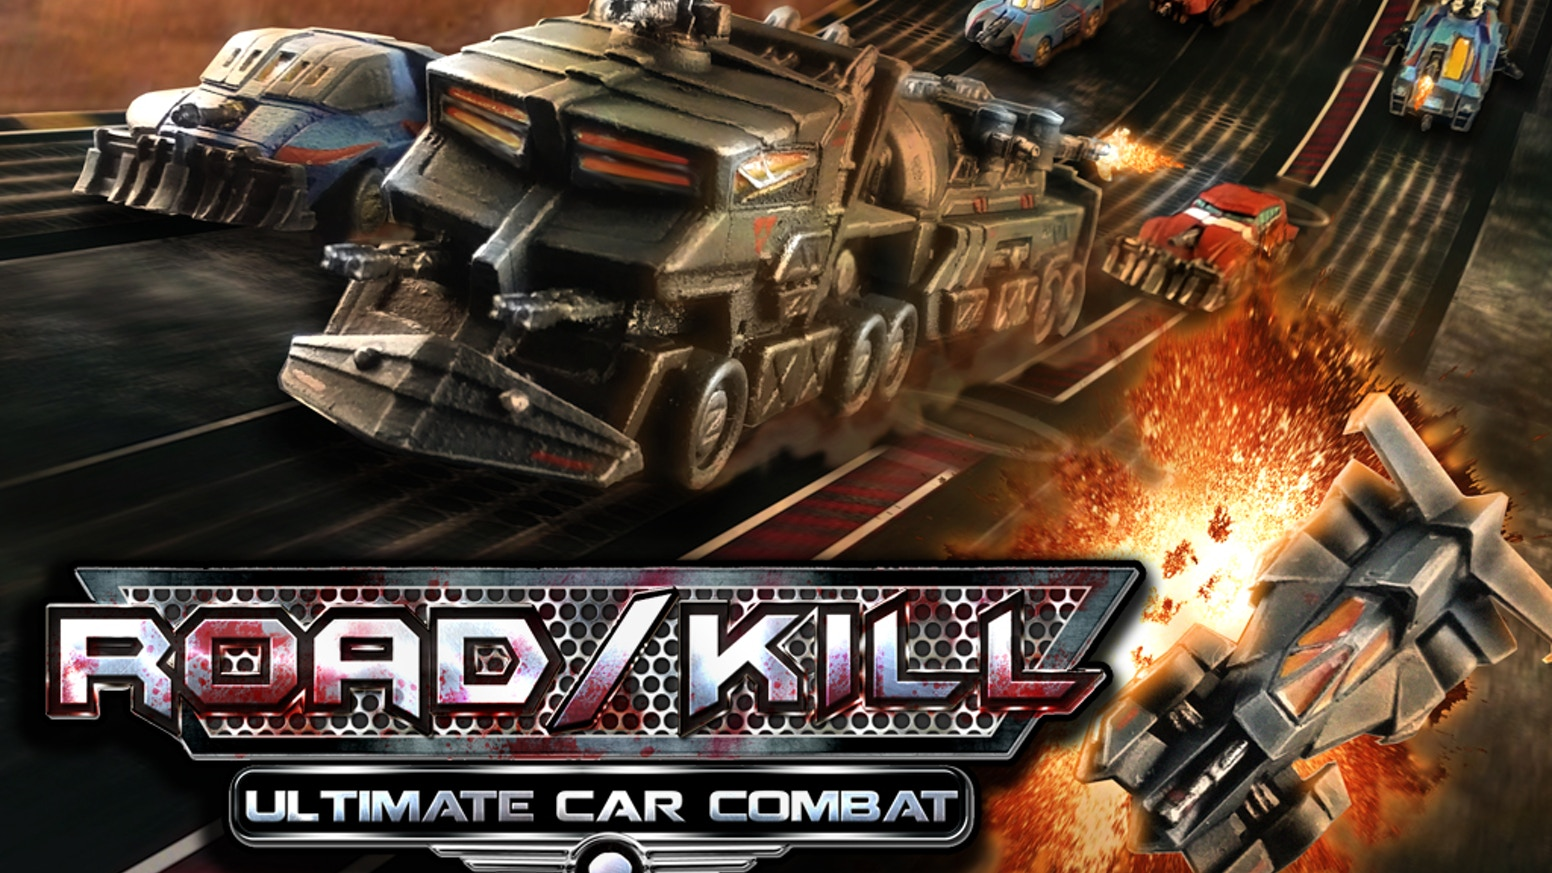 car combat miniatures and road kill game system by johnny lauck